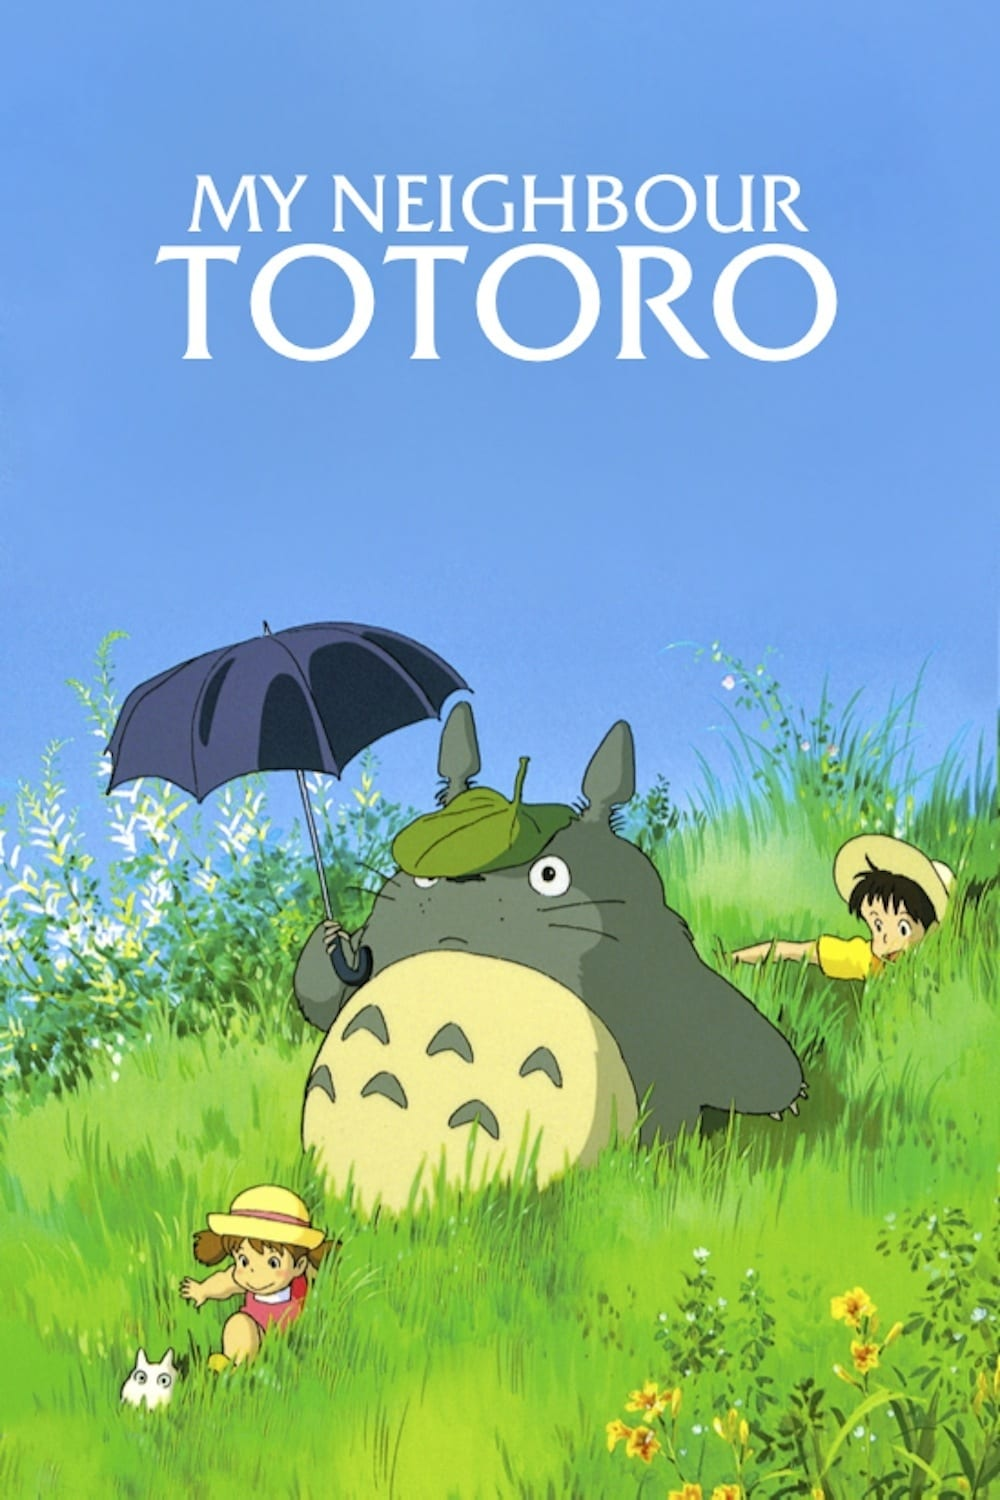 Poster and image movie Film Vecinul meu Totoro - となりのトトロ - My Neighbor Totoro - My Neighbor Totoro -  1988